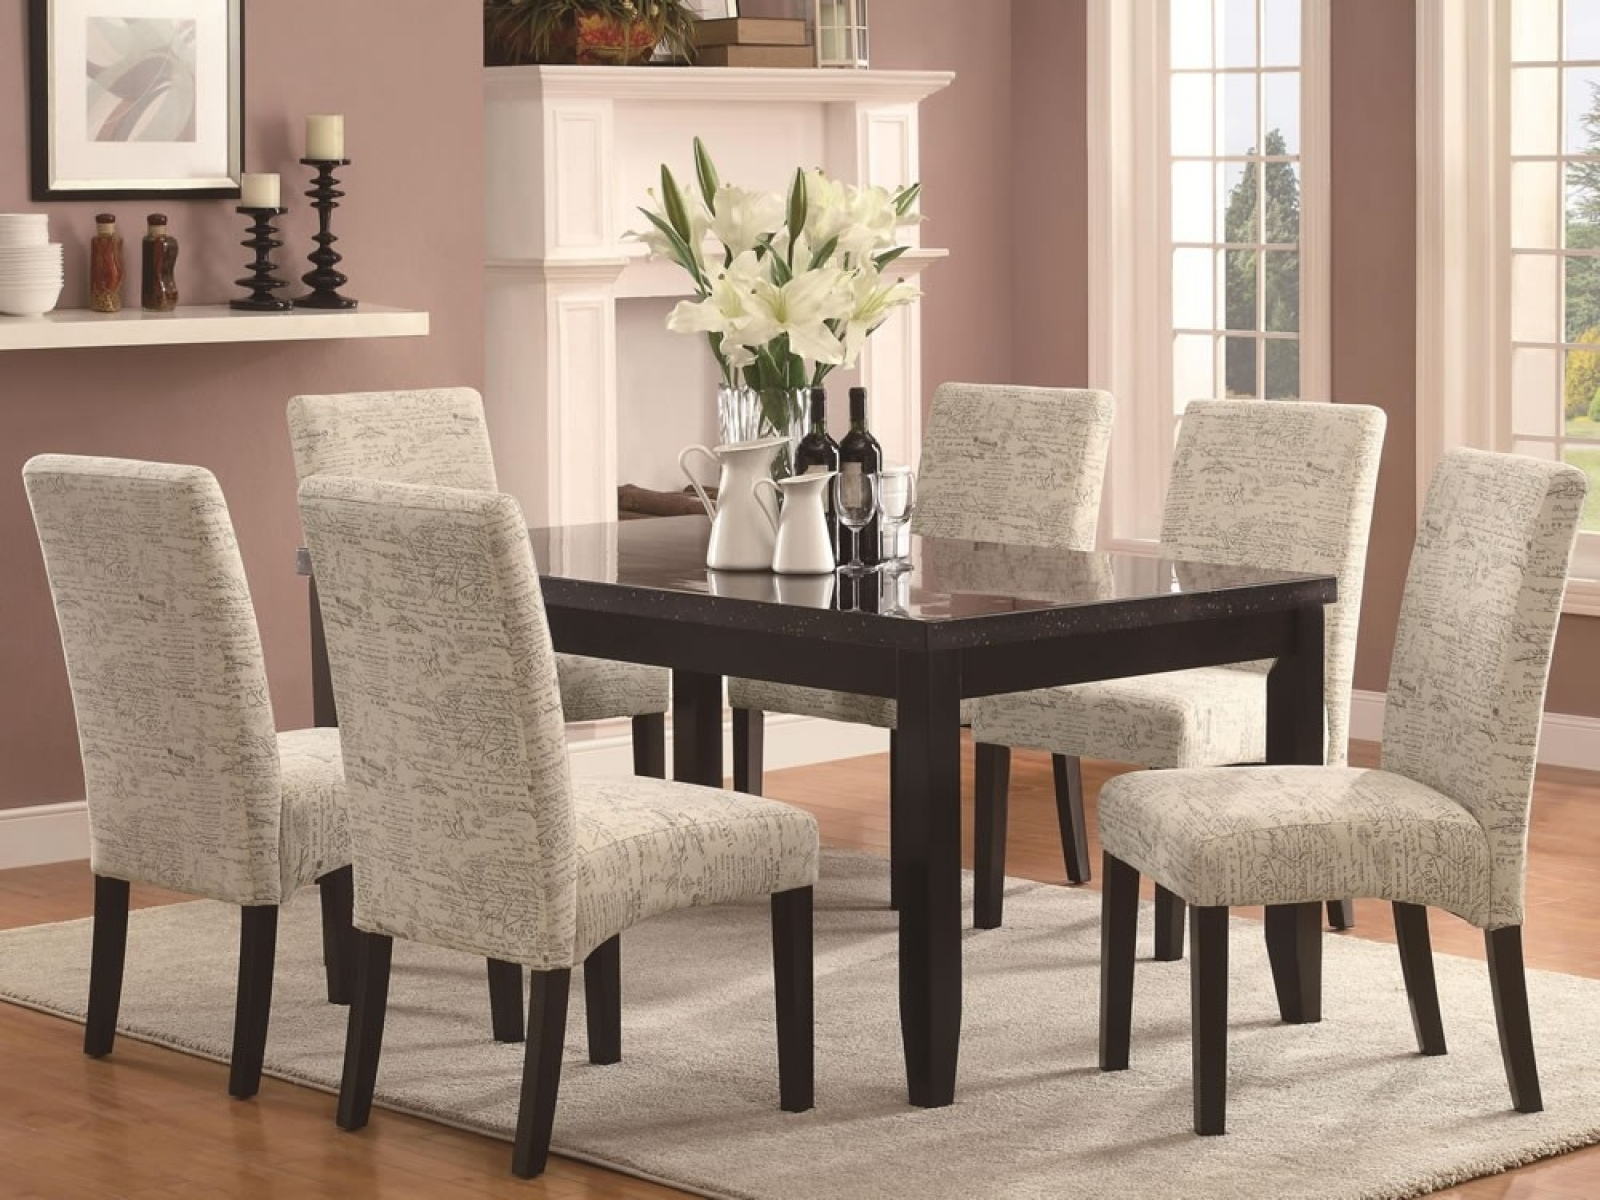 Most Up To Date Fabric Covered Dining Chairs Regarding Fancy Dining Room With Upholstered Dining Chair Also Wood Dining (View 8 of 25)